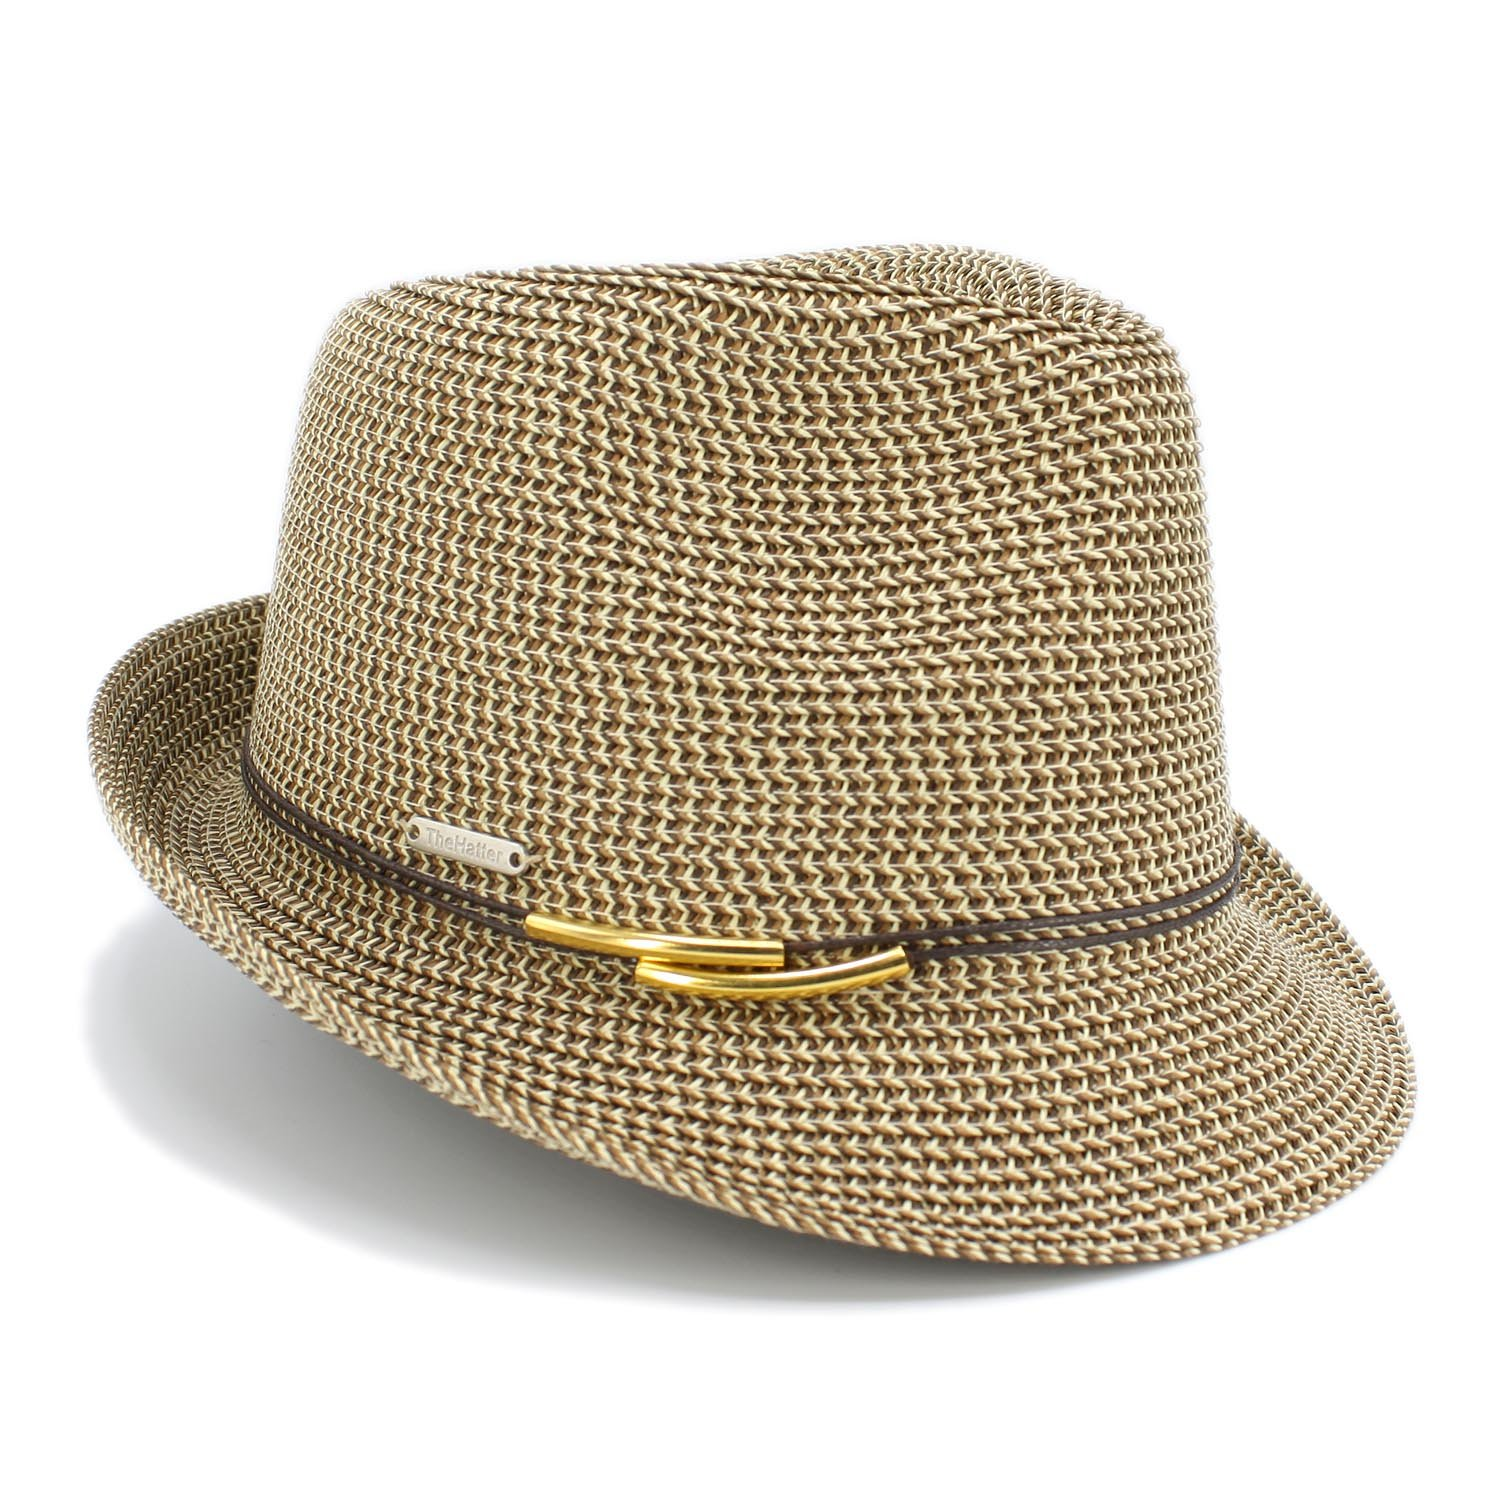 1 3/4'' Wide Brim Panama Roll up Fedora Sun Hat Beach Cap (B-Choco)